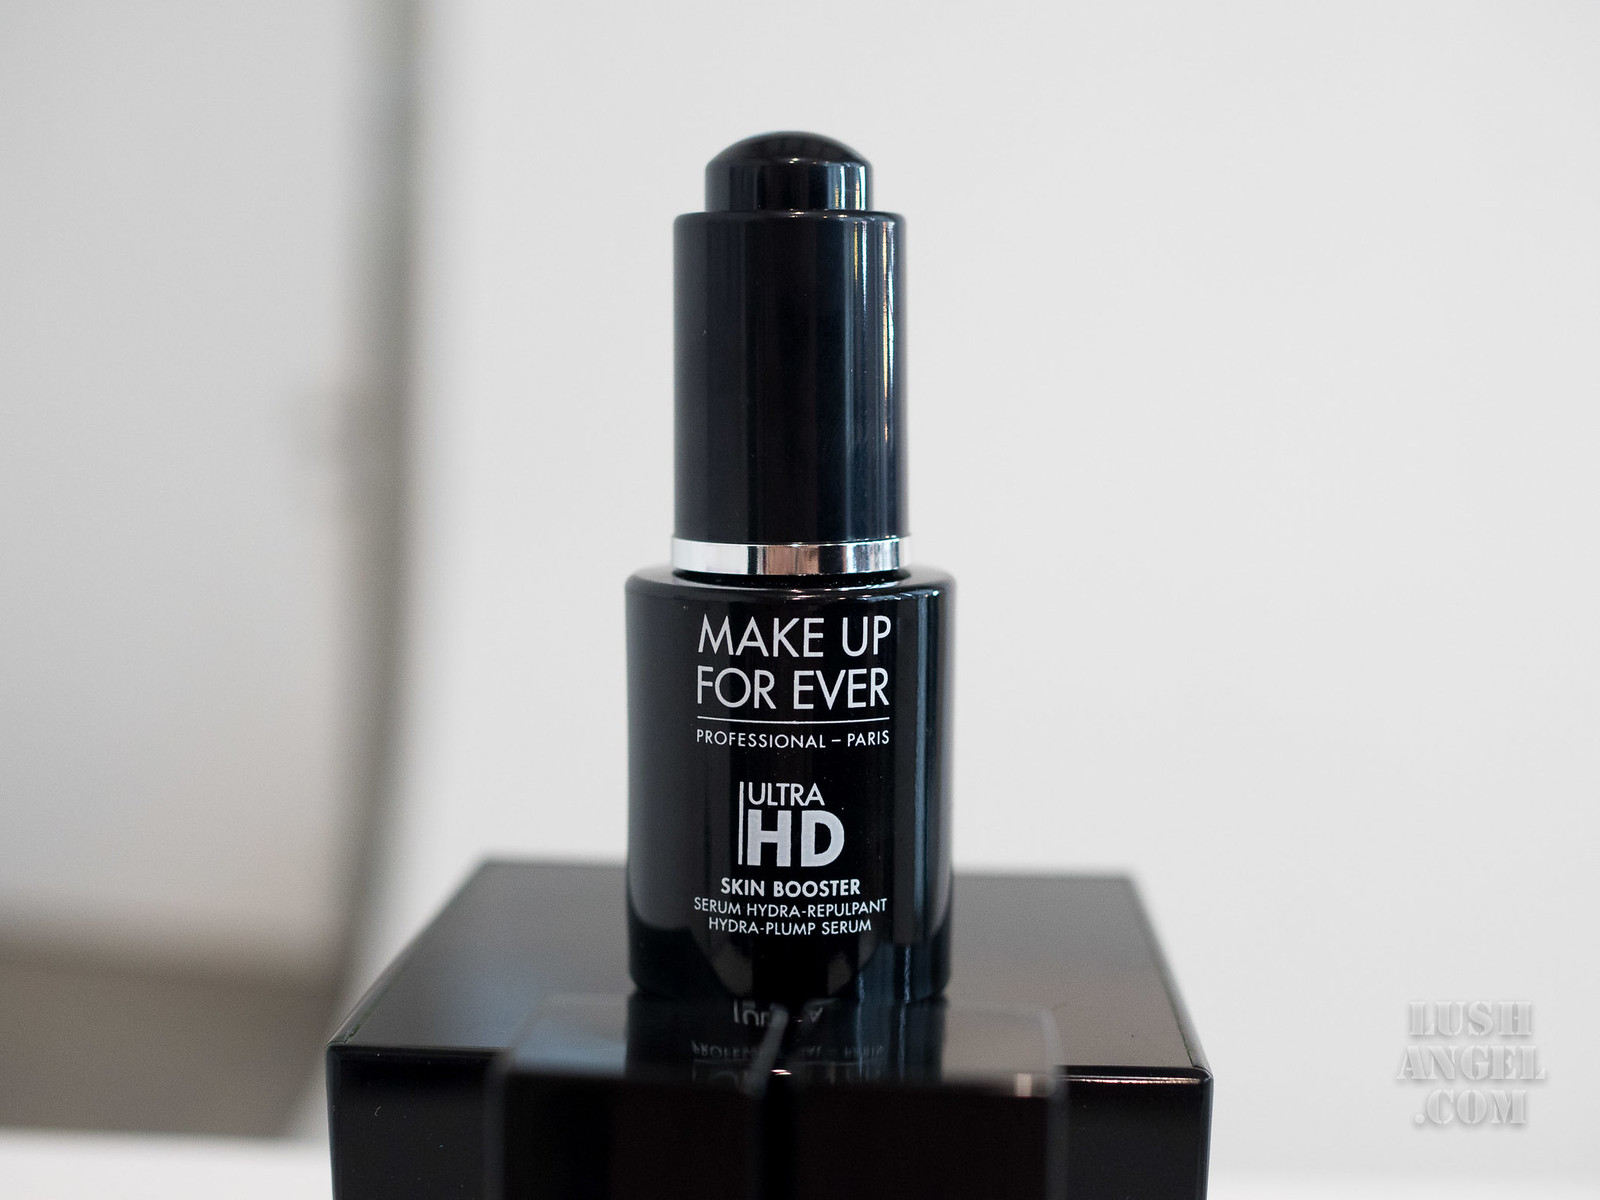 Ultra hd skin booster makeup forever